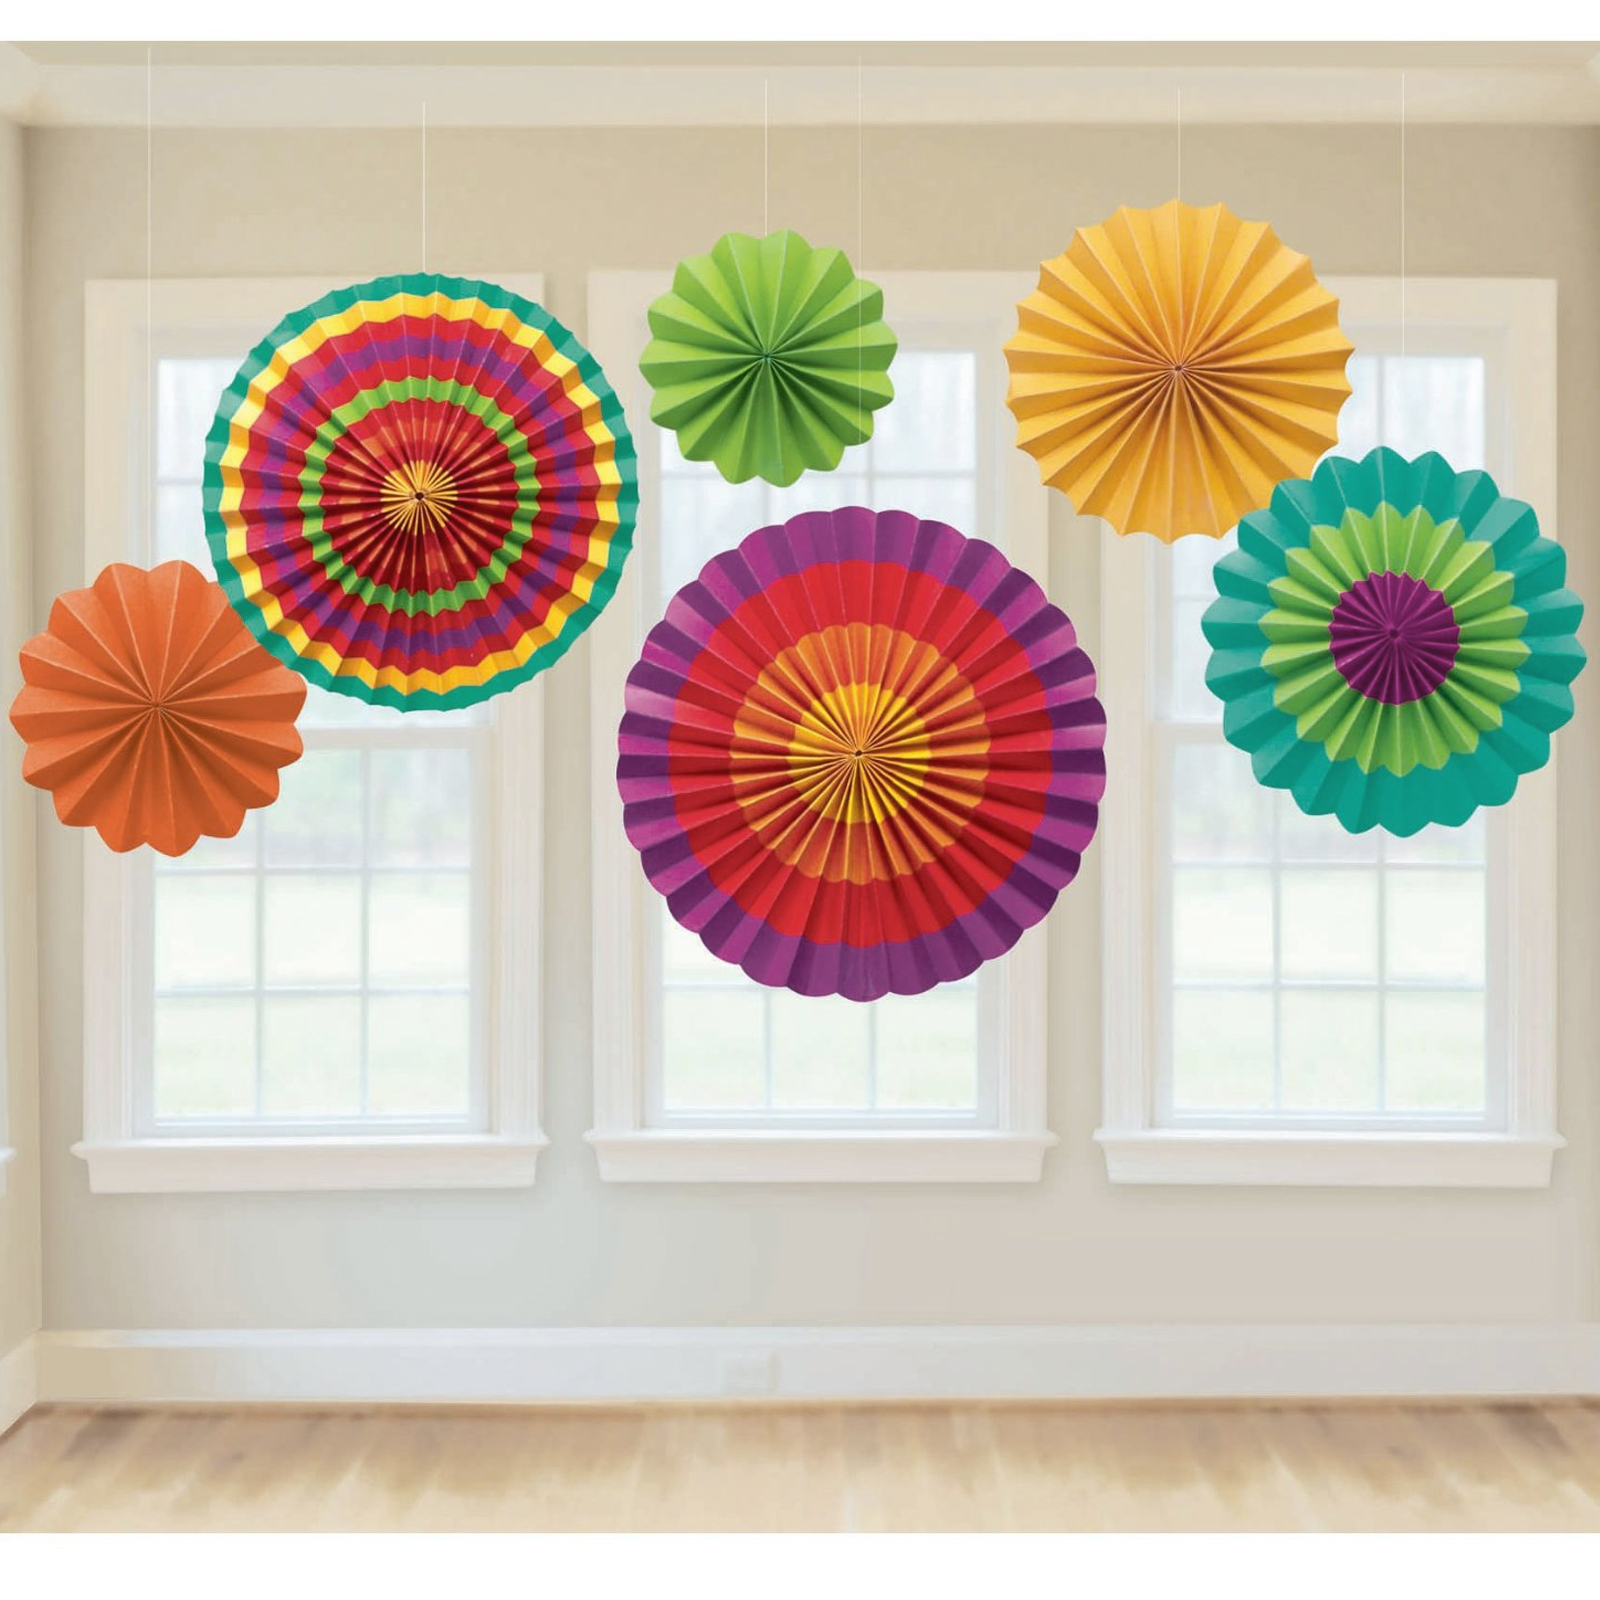 New fiesta paper fan decoration 6 colorful fans cinco de for Home decorations fan